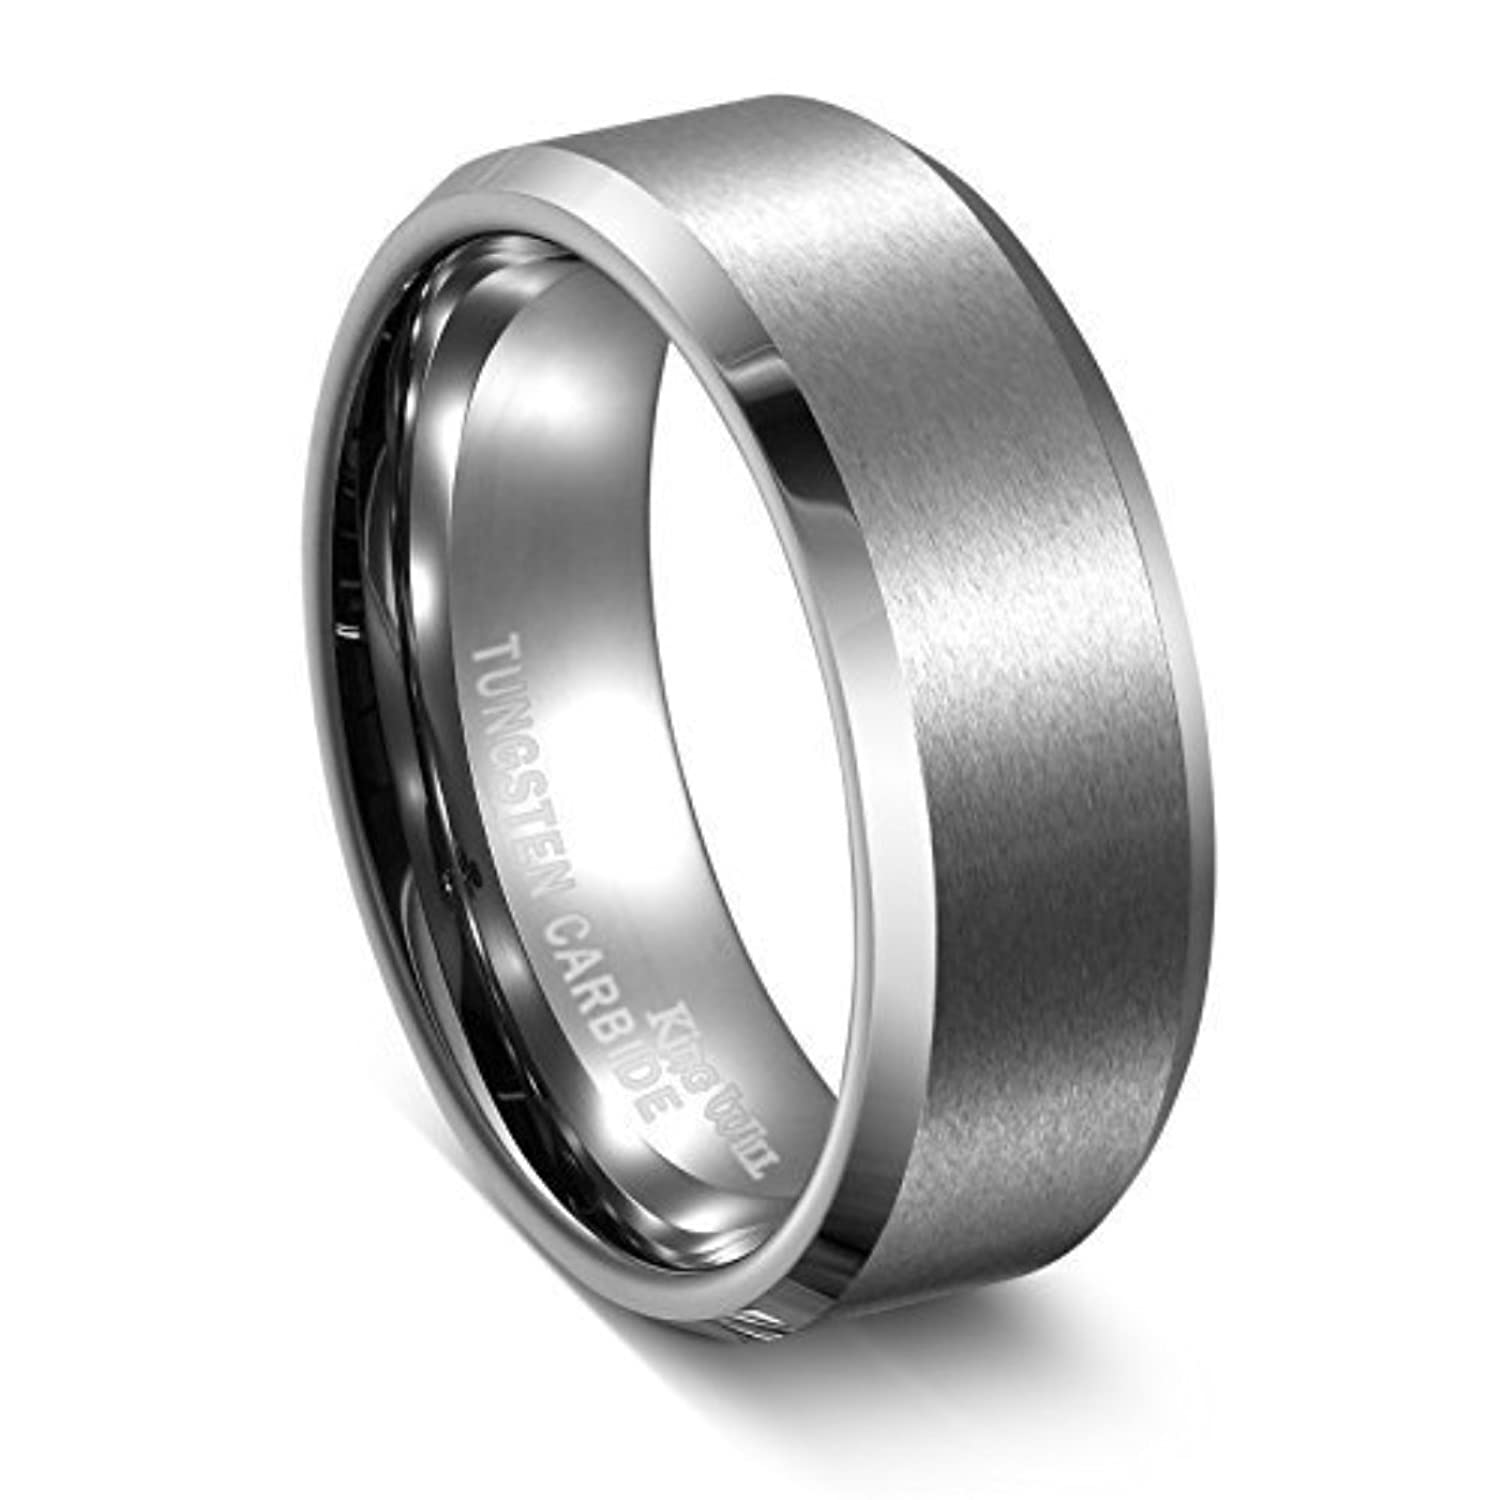 Top 20 Best Wedding Band Rings For Men 2016 2017 On Flipboard